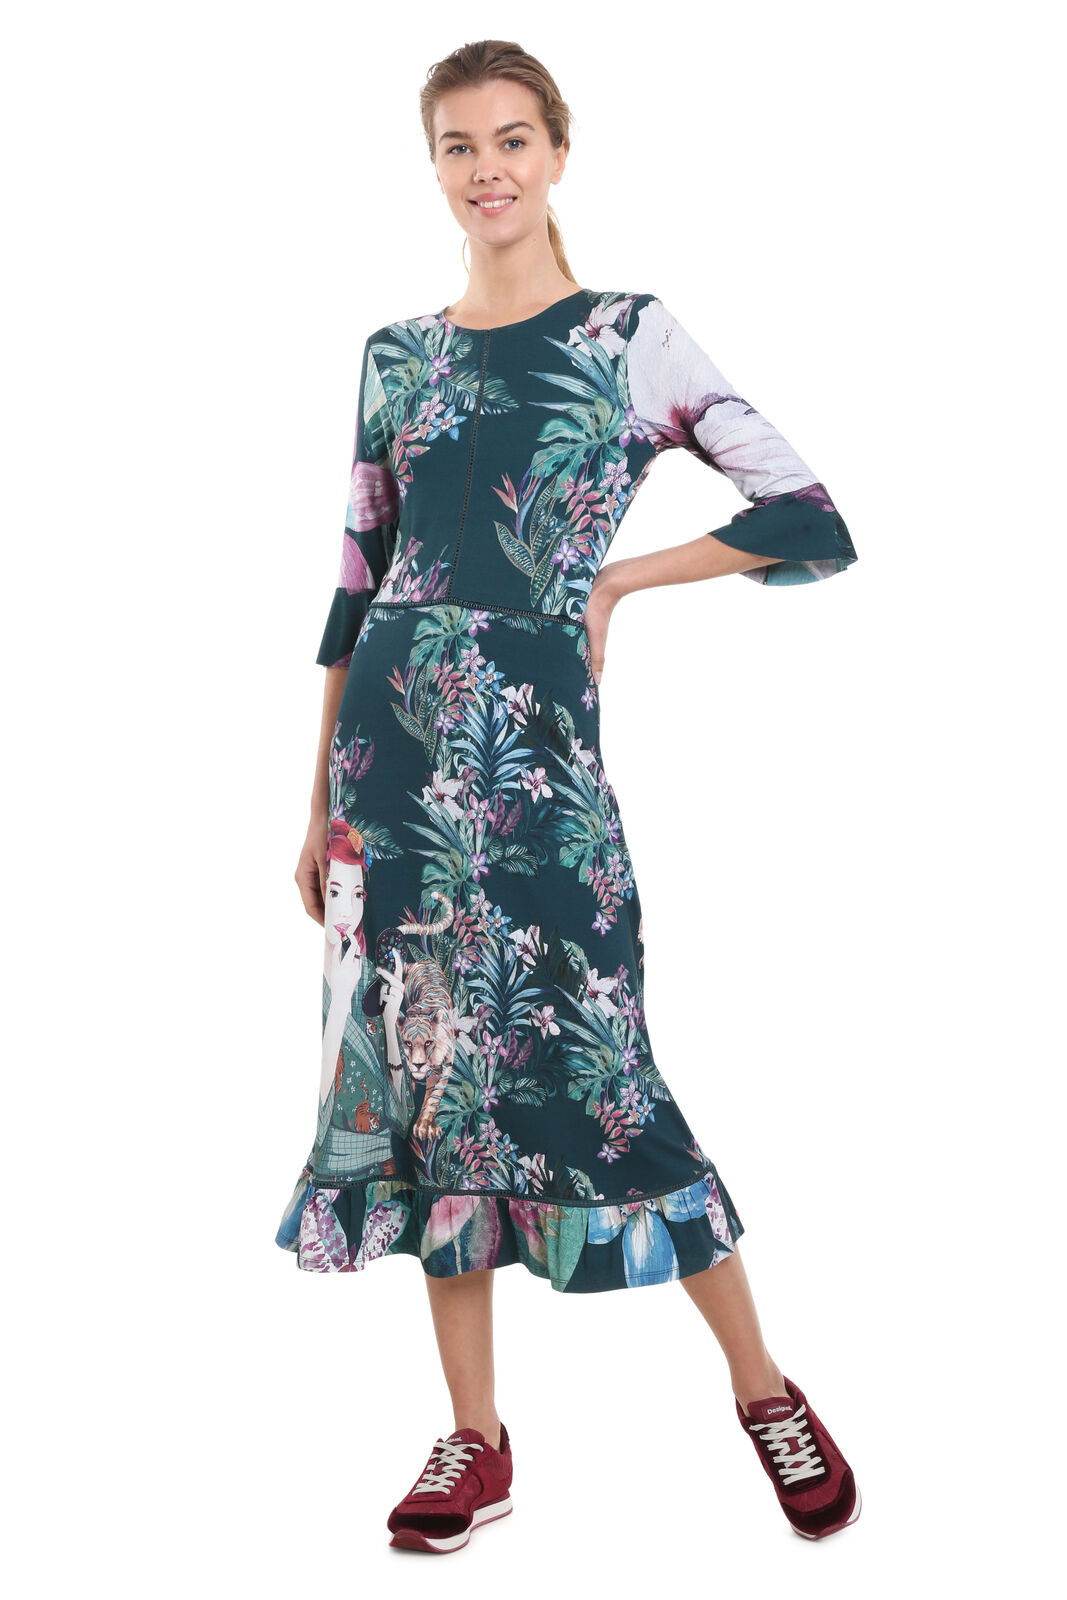 Desigual Kiruna Dress Jungle & Lion Print 3 4 Sleeve Midi XS-XXL RRP